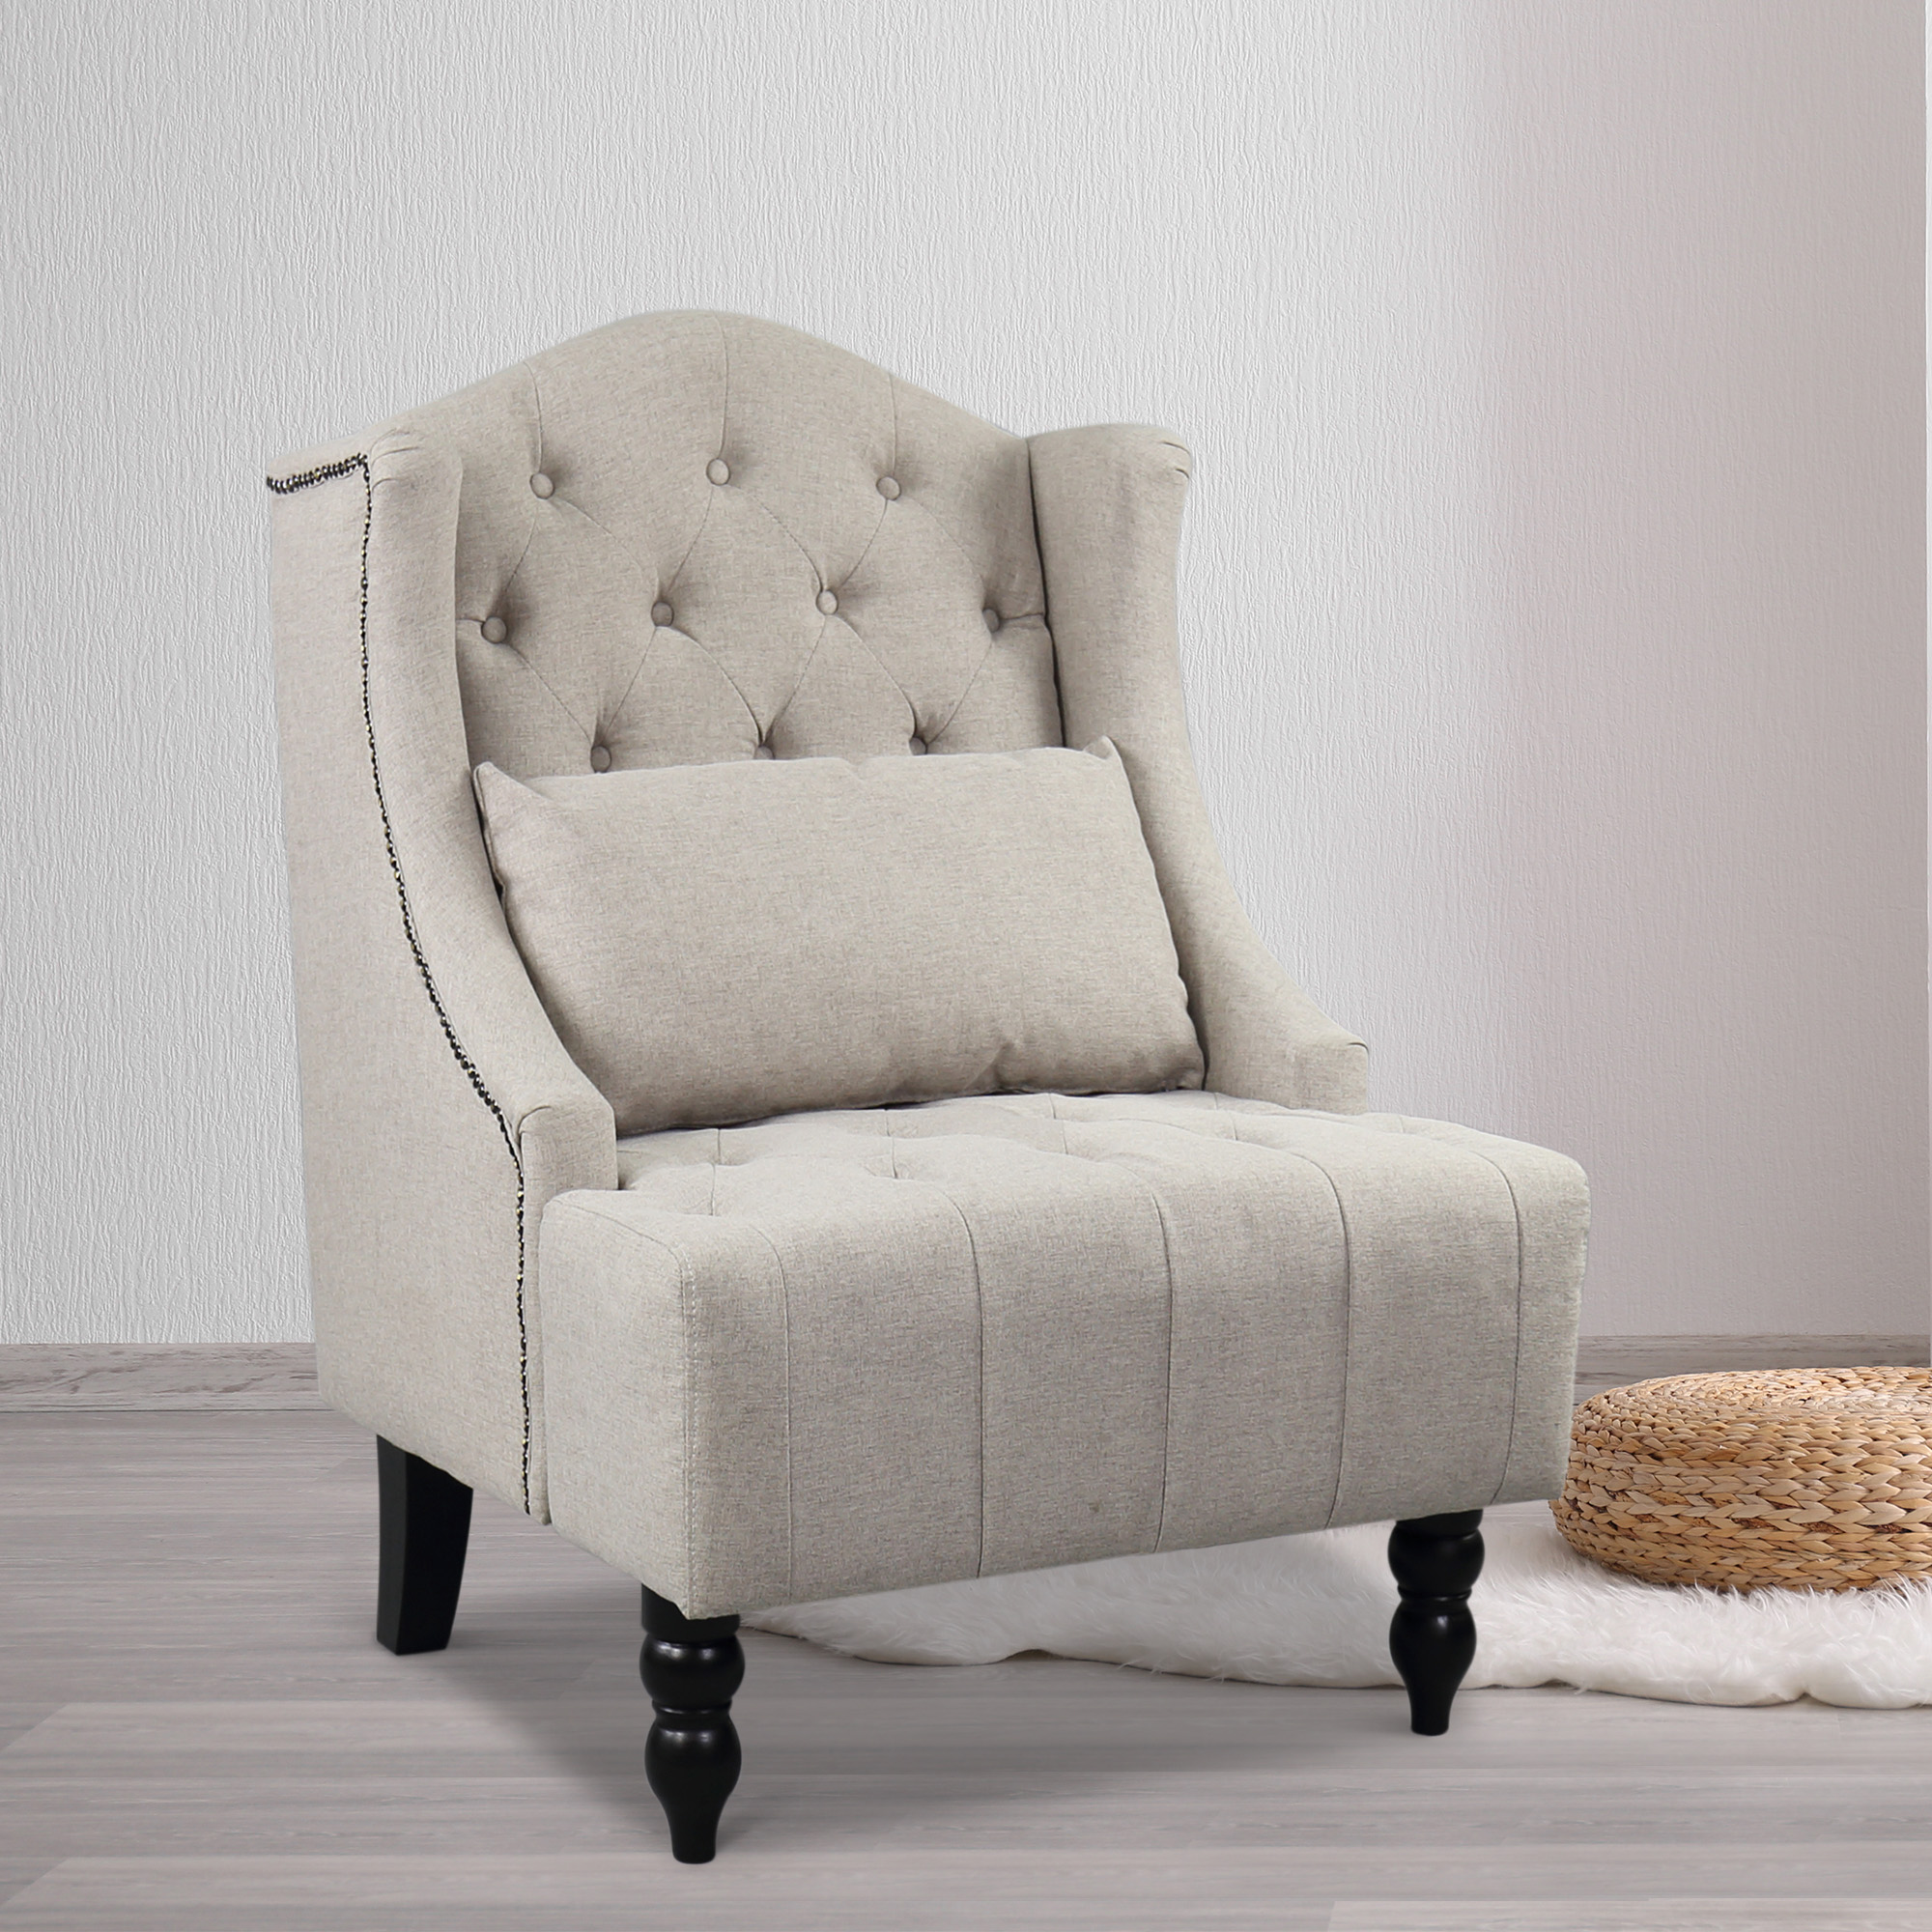 Wingback Tufted Chair Details About Tall Wingback Tufted Chair Accent Club Chair Nailhead Living Room Grey